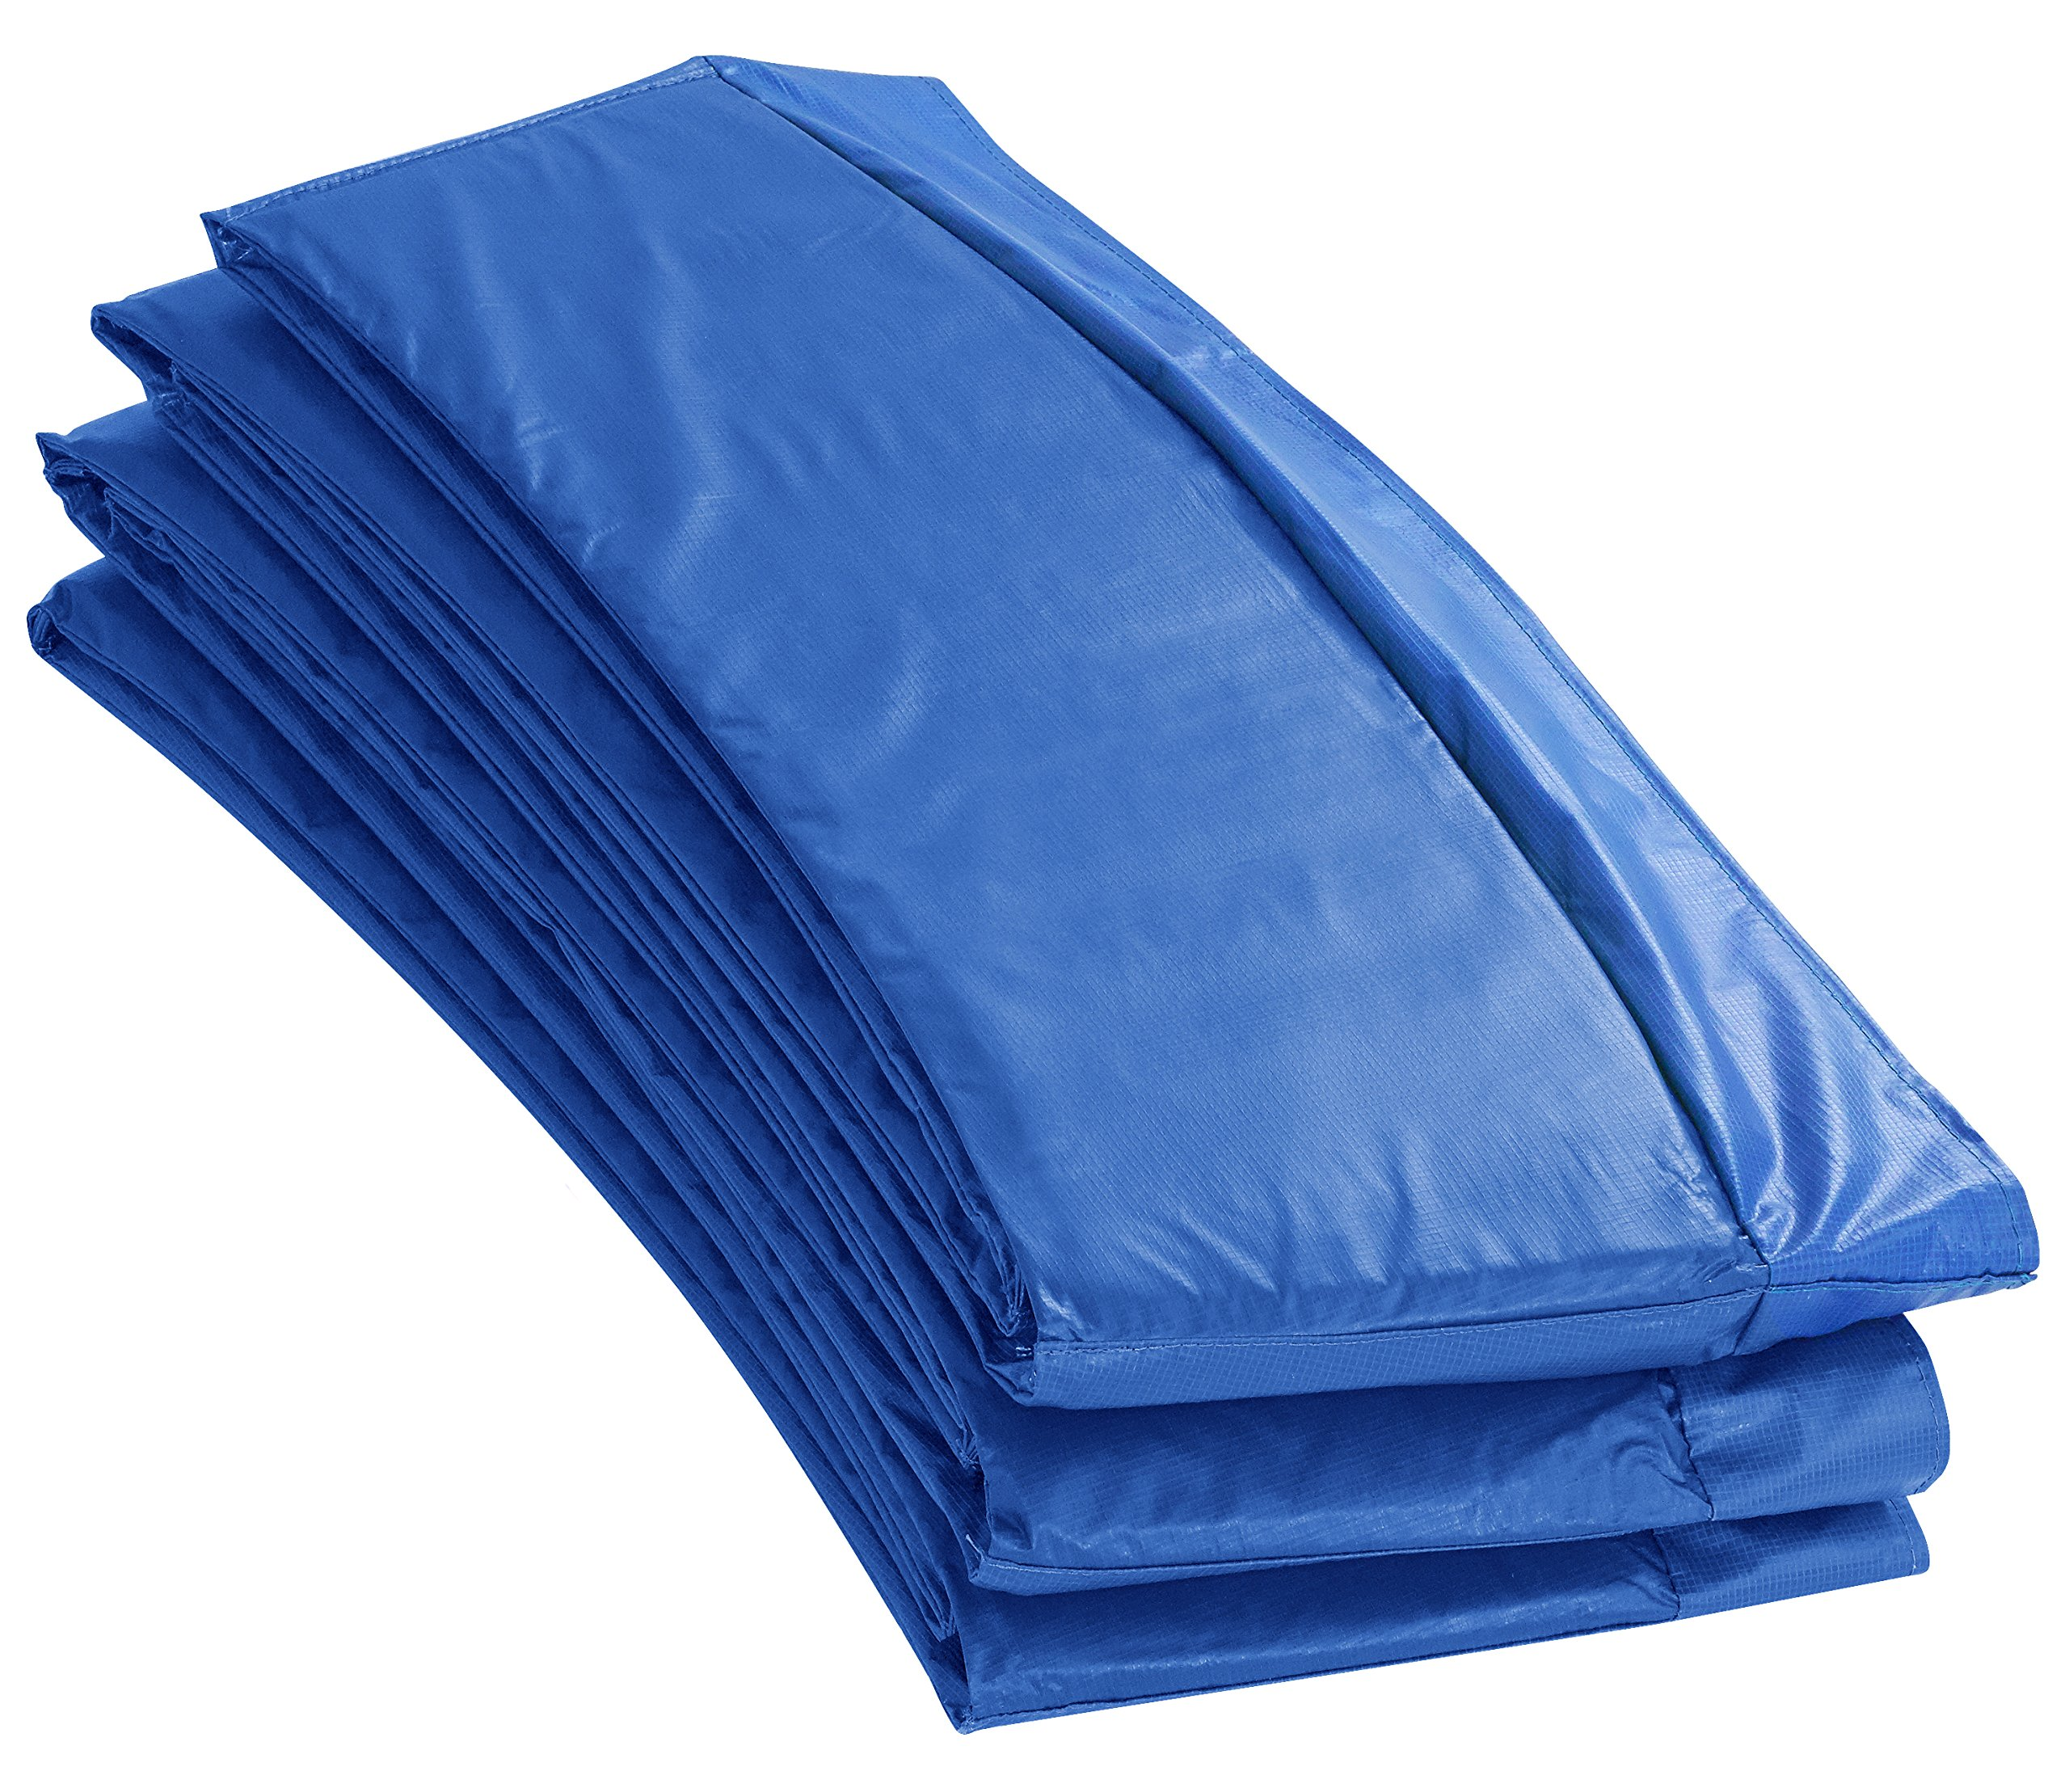 Upper Bounce 8-Feet Super Trampoline Safety Pad (Spring Cover) for 8-Feet Round Trampoline Frames, 10-Inch, Blue by Upper Bounce